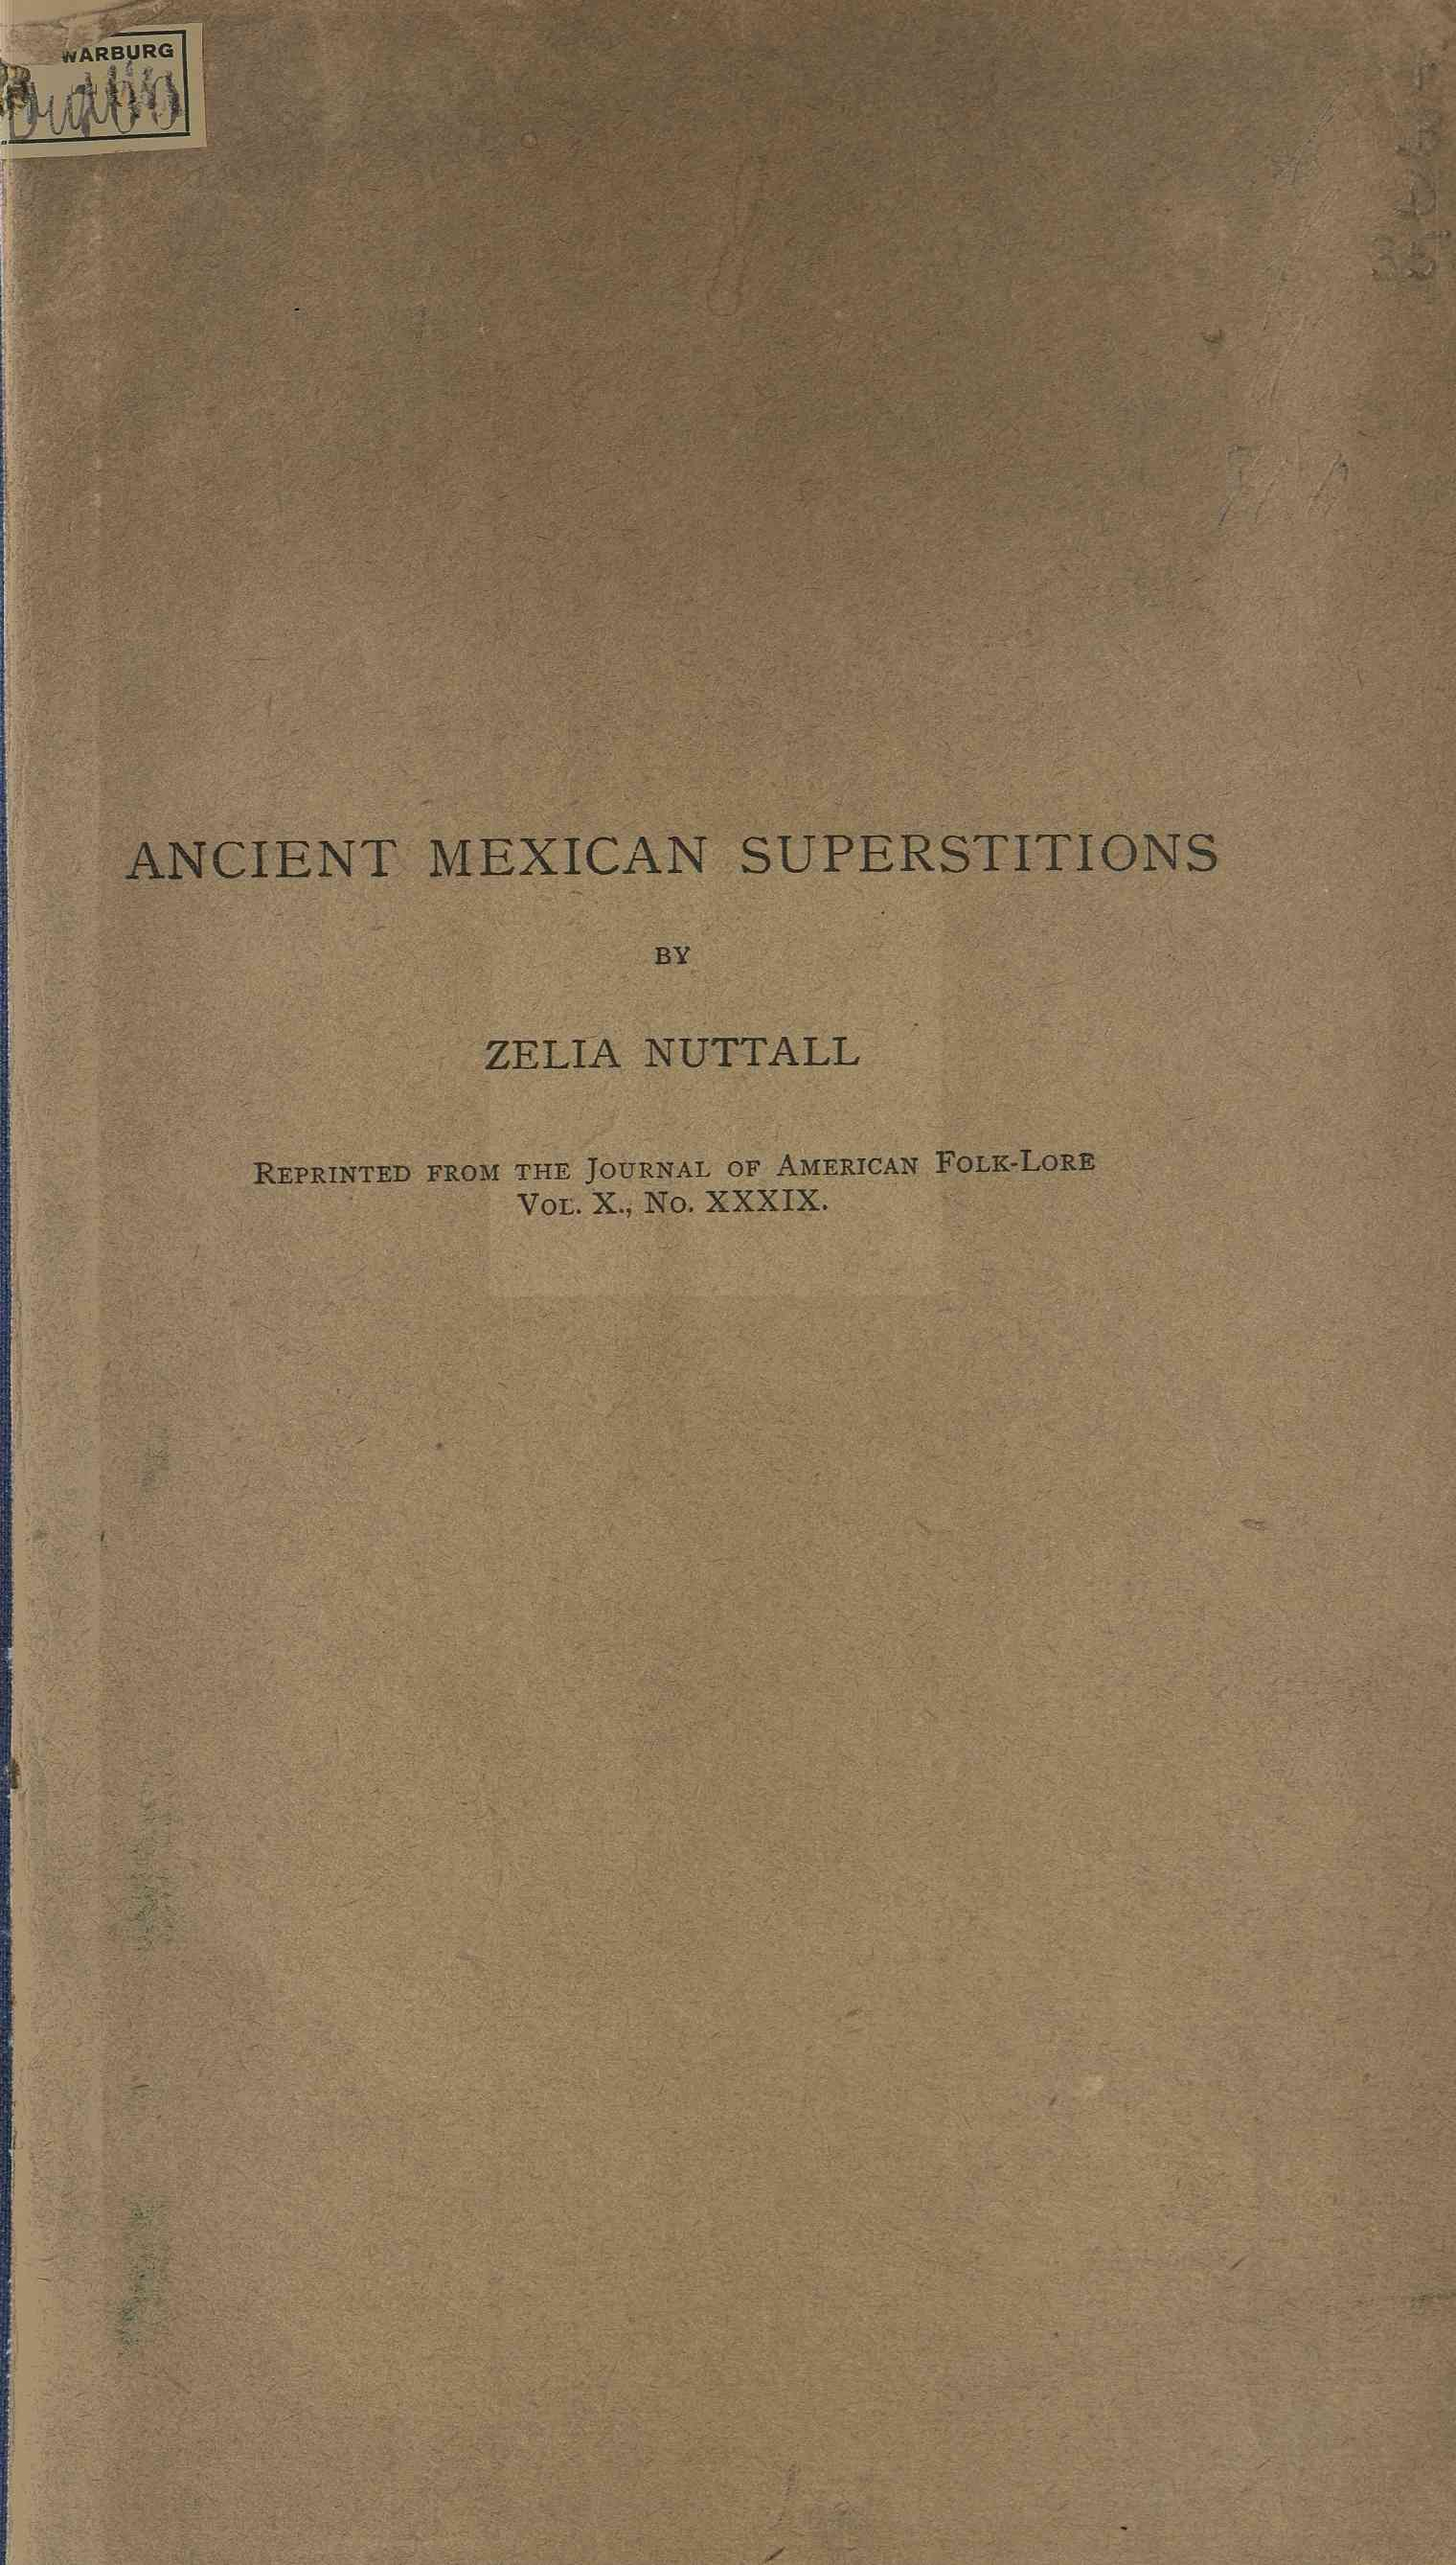 Ancient Mexican superstitions